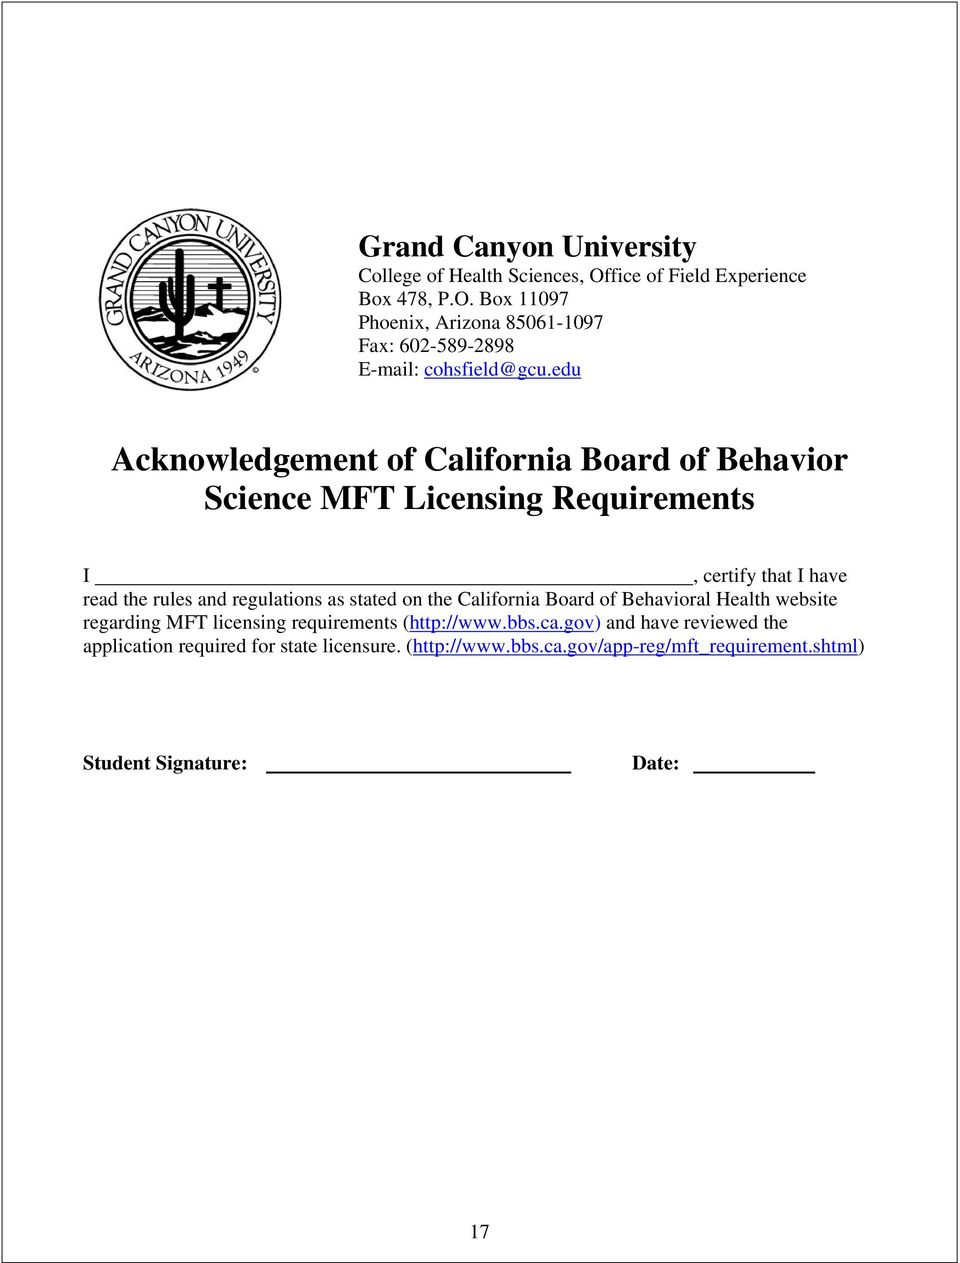 regulations as stated on the California Board of Behavioral Health website regarding MFT licensing requirements (http://www.bbs.ca.